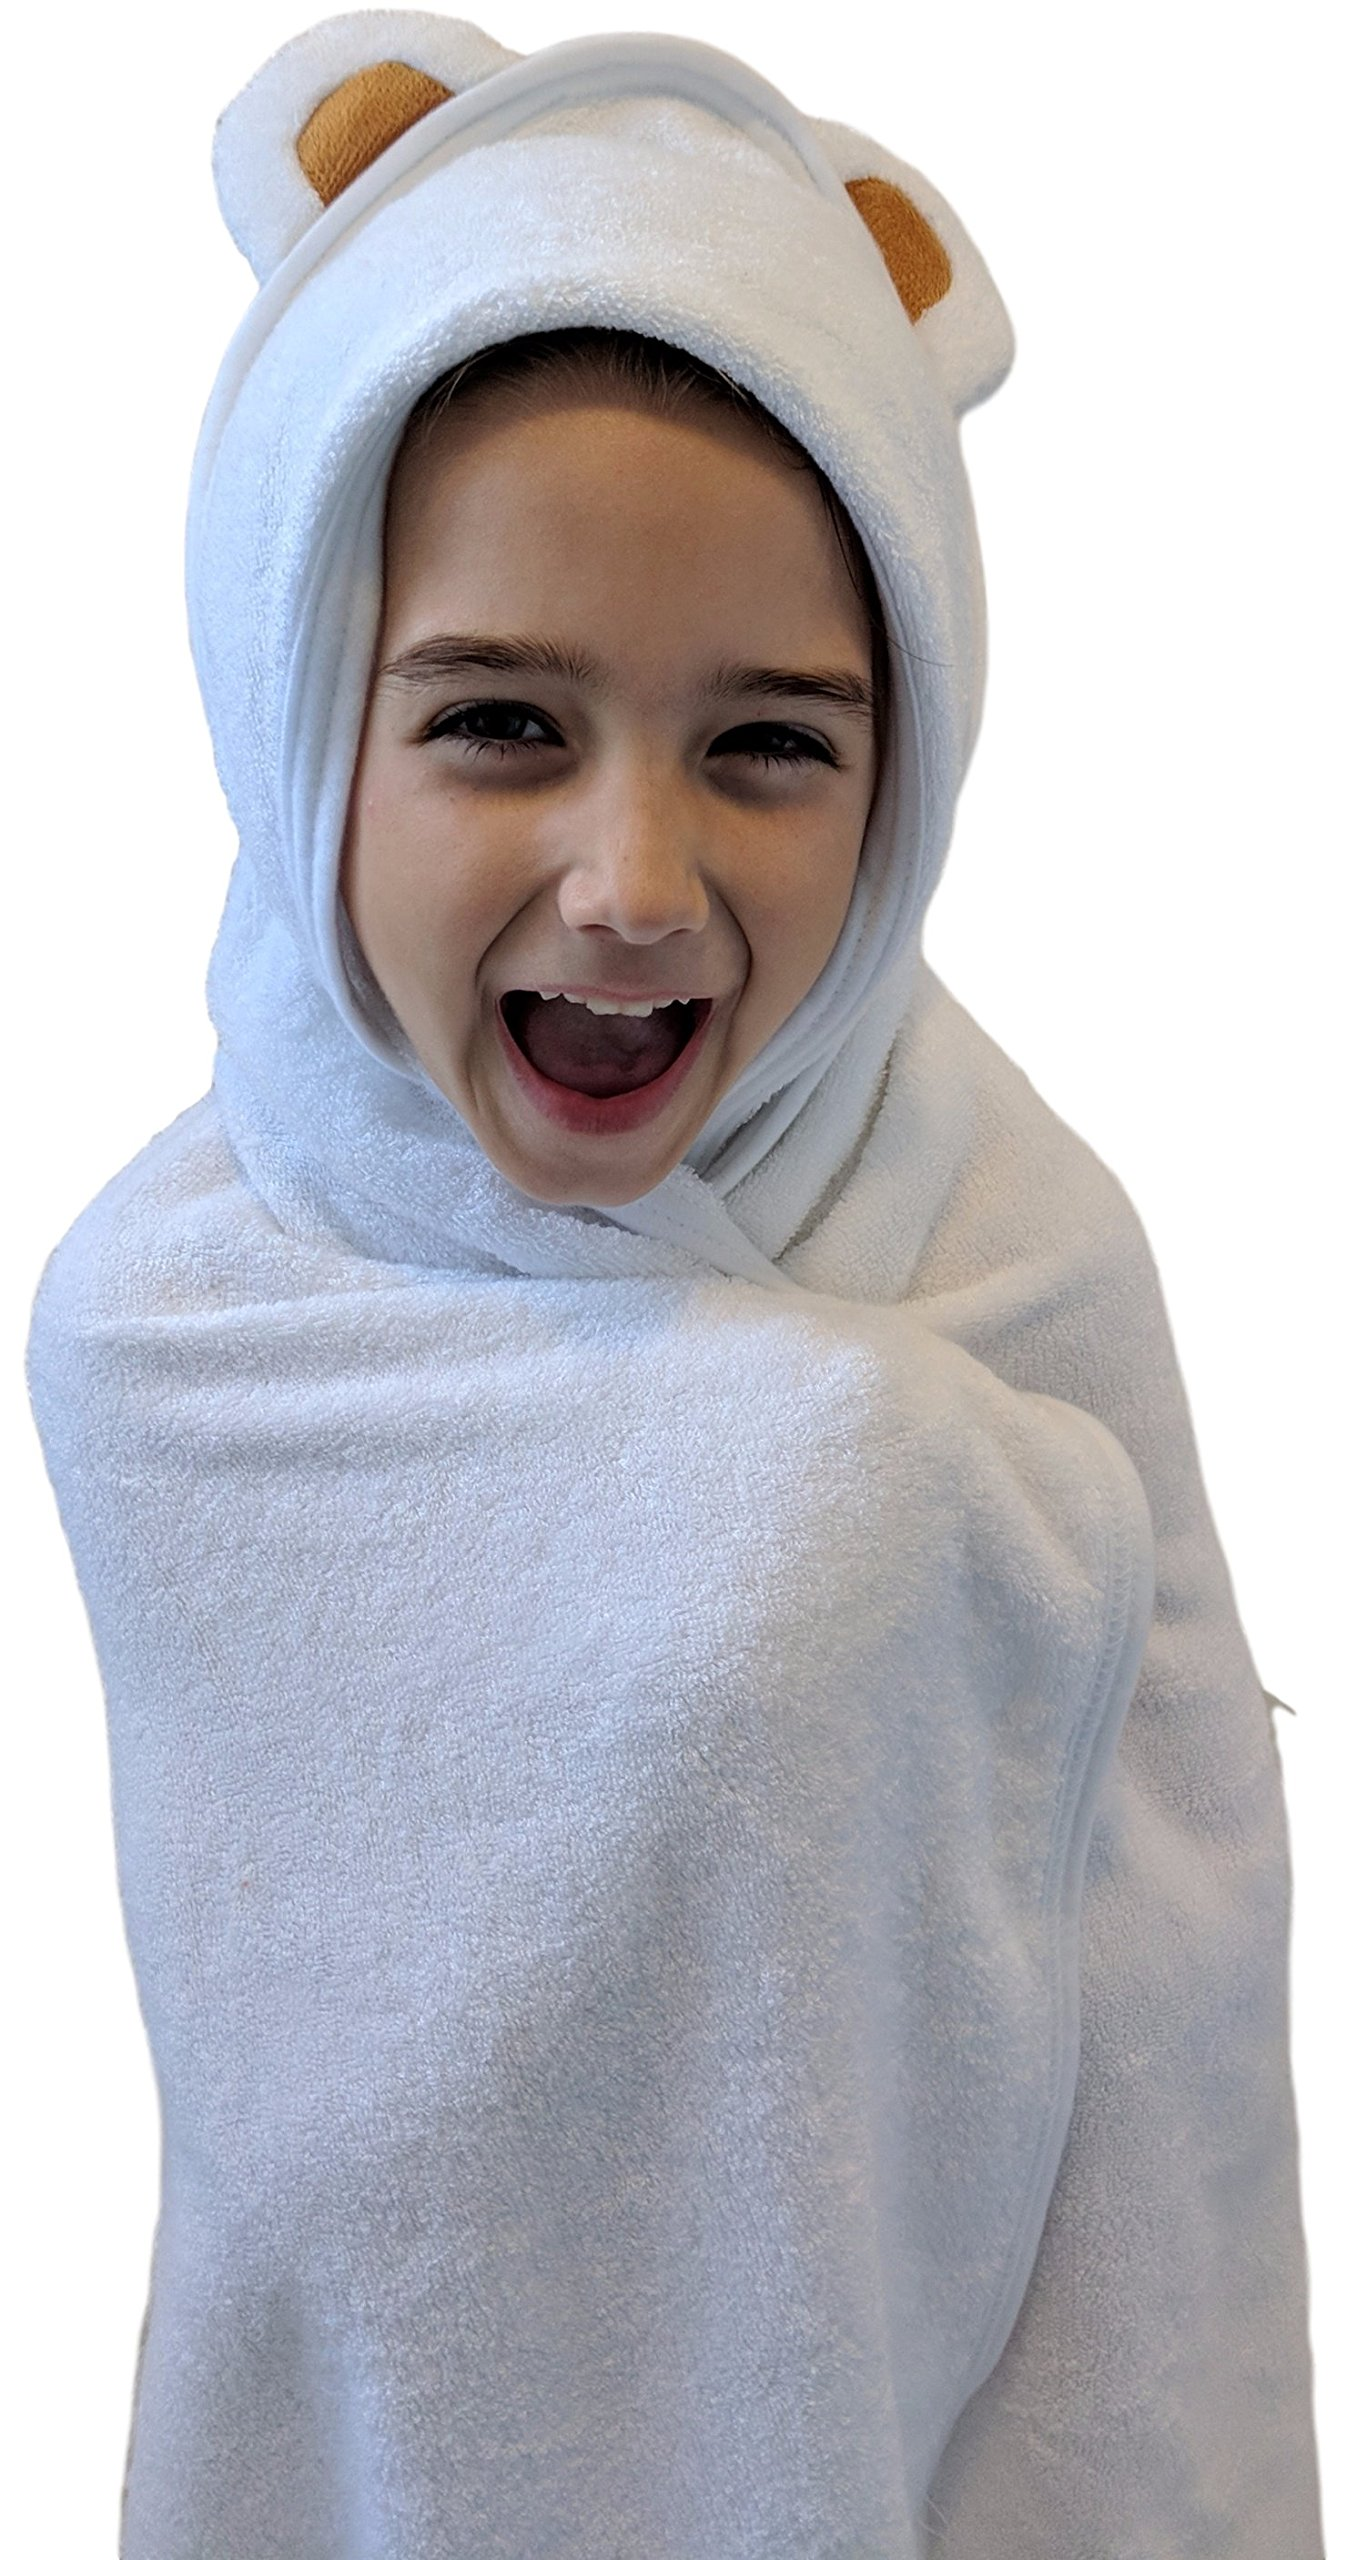 Coconut Baby Hooded Bamboo Towel - 100% Natural - Hypoallergenic - Soft and Absorbent - Thick and Large for Toddlers, Kids, Girls and Boys. Soft with Ears! 90 x 90 cm / 35 x 35 in